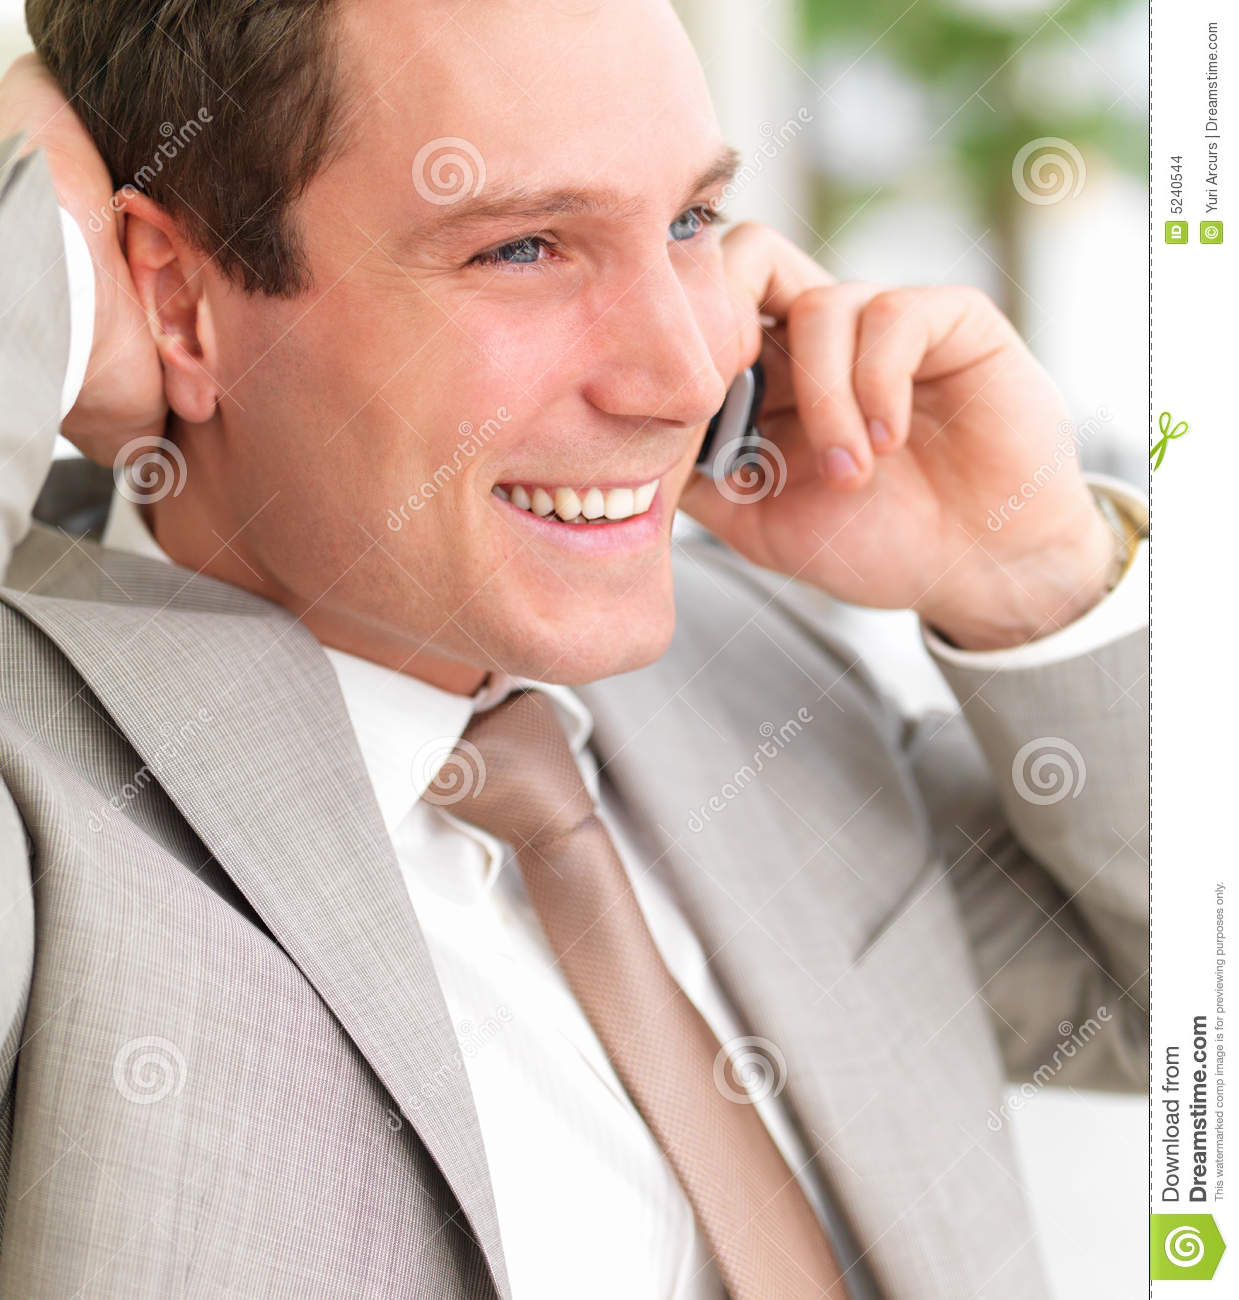 Man On Cell Phone : Young smiling business man using cell phone with h stock